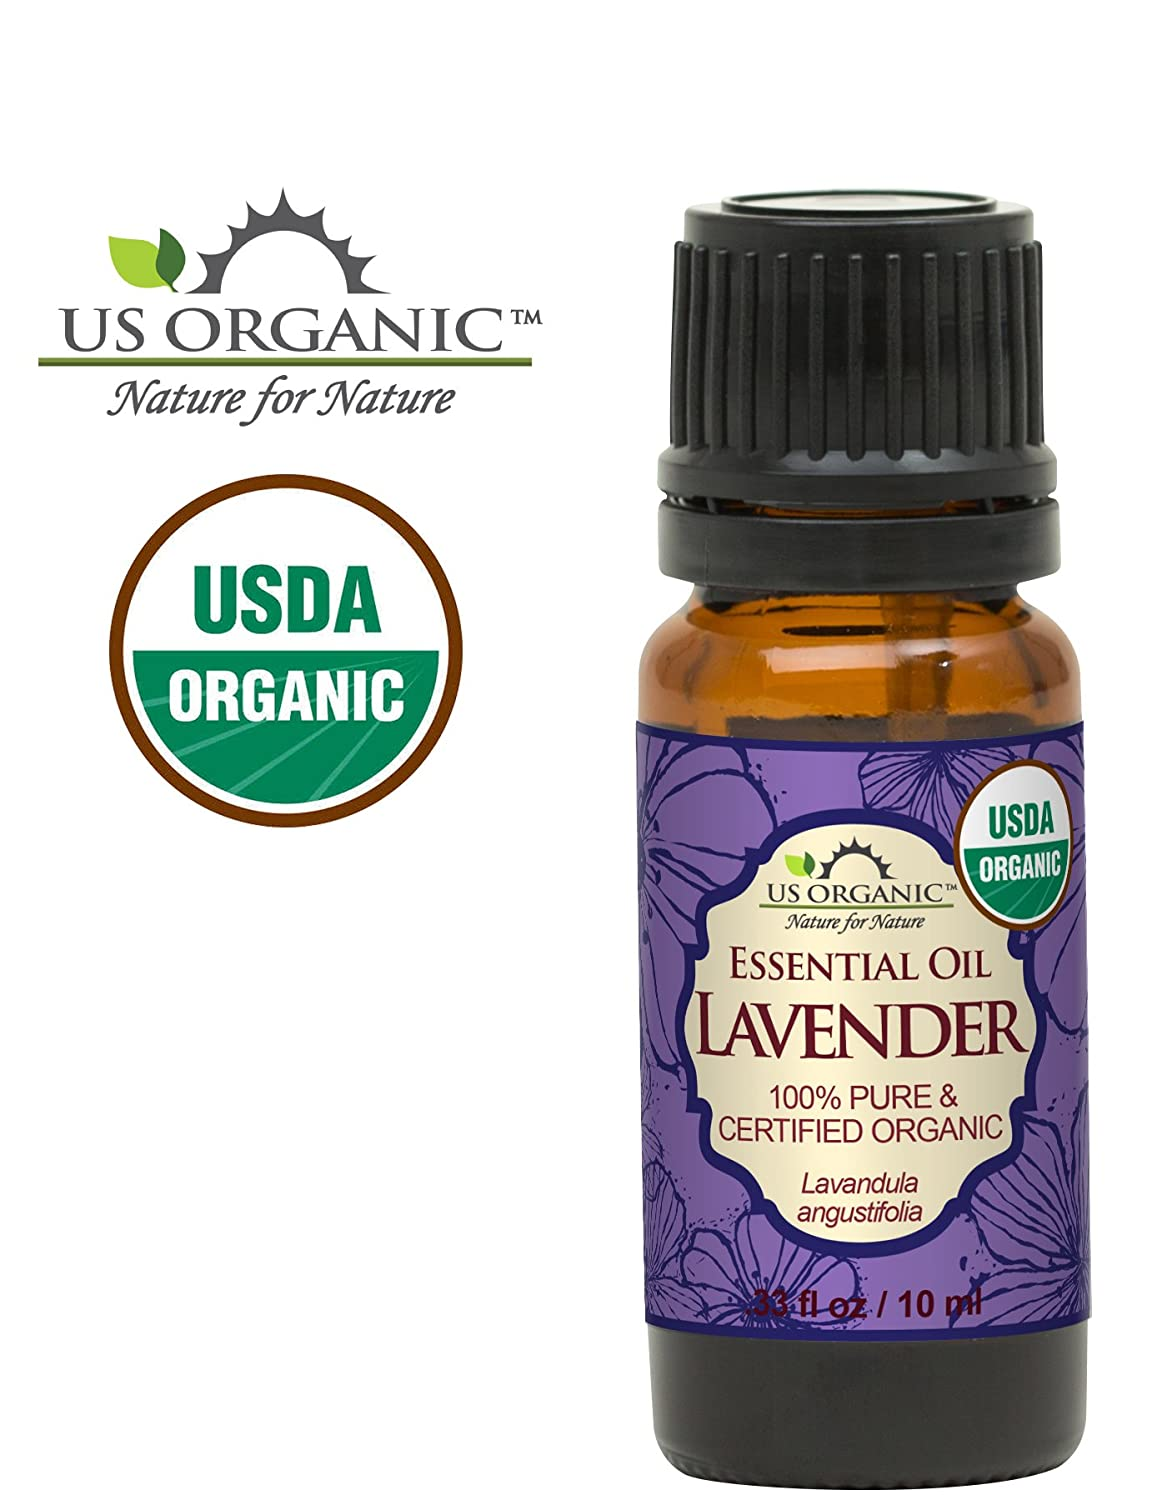 US Organic 100% Pure Lavender Essential Oil - USDA Cert Organic - 10 ml